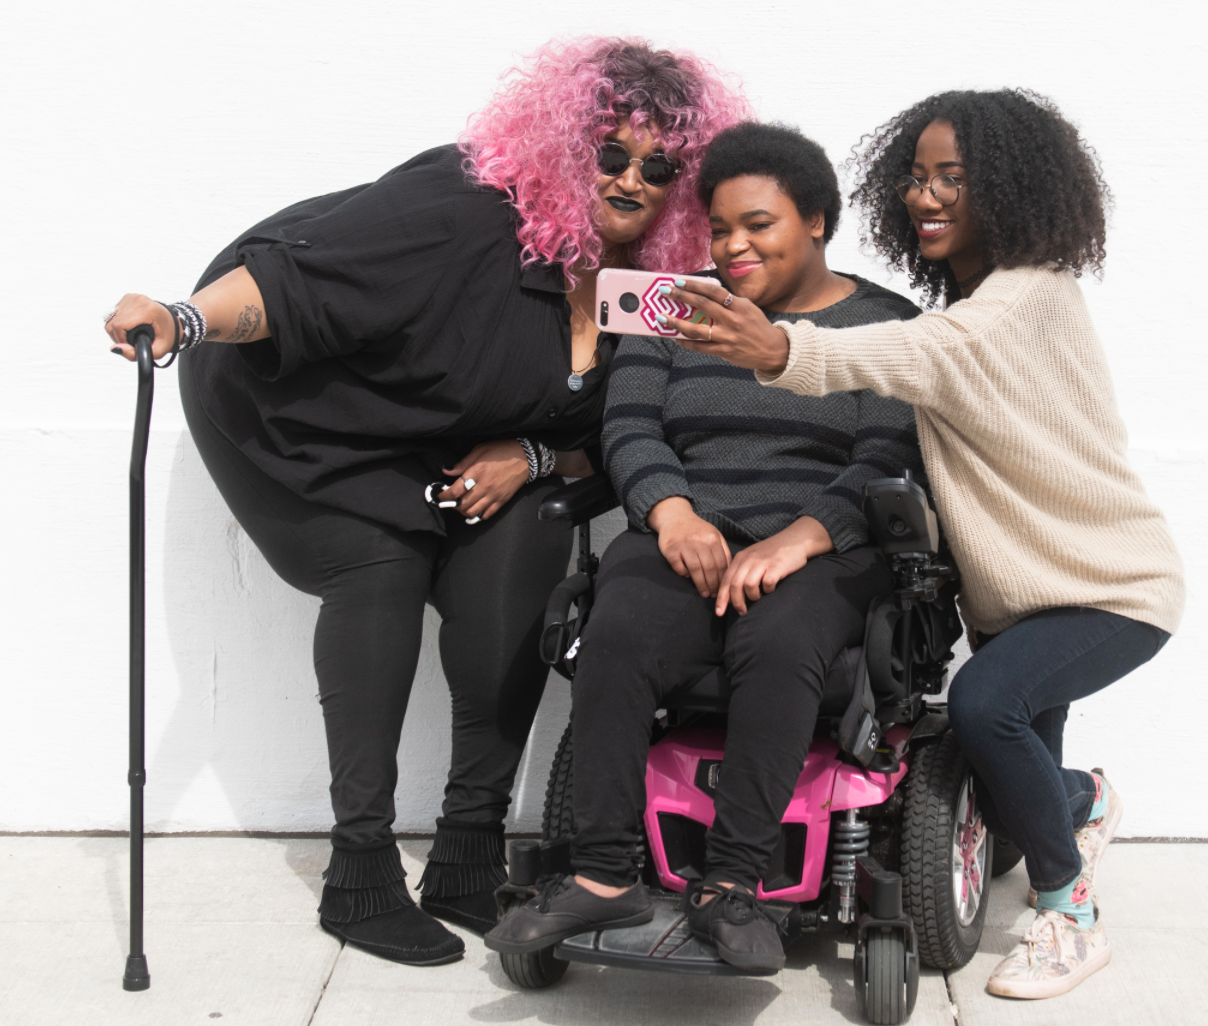 3 women leaning in together for a selfie. 1 holding a cane, 1 seated on a power wheelchair, and 1 woman hold a phone.